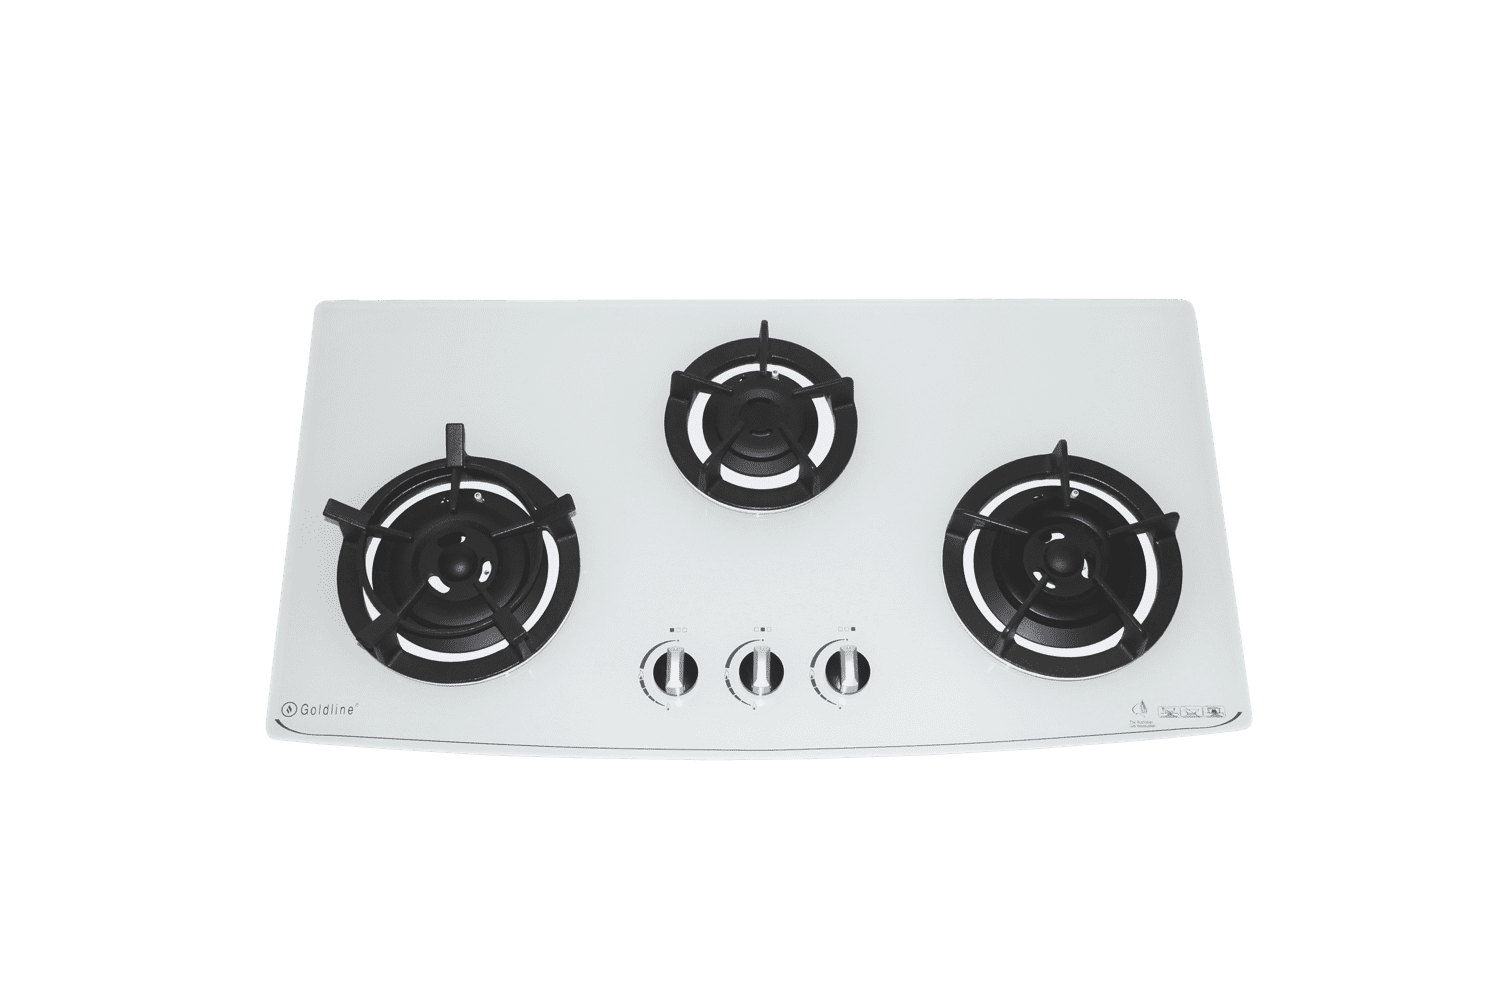 GOLDLINE THREE BURNER WHITE GLASS COOKTOP WITH CAST IRON TRIVETS & CURVED FRONT